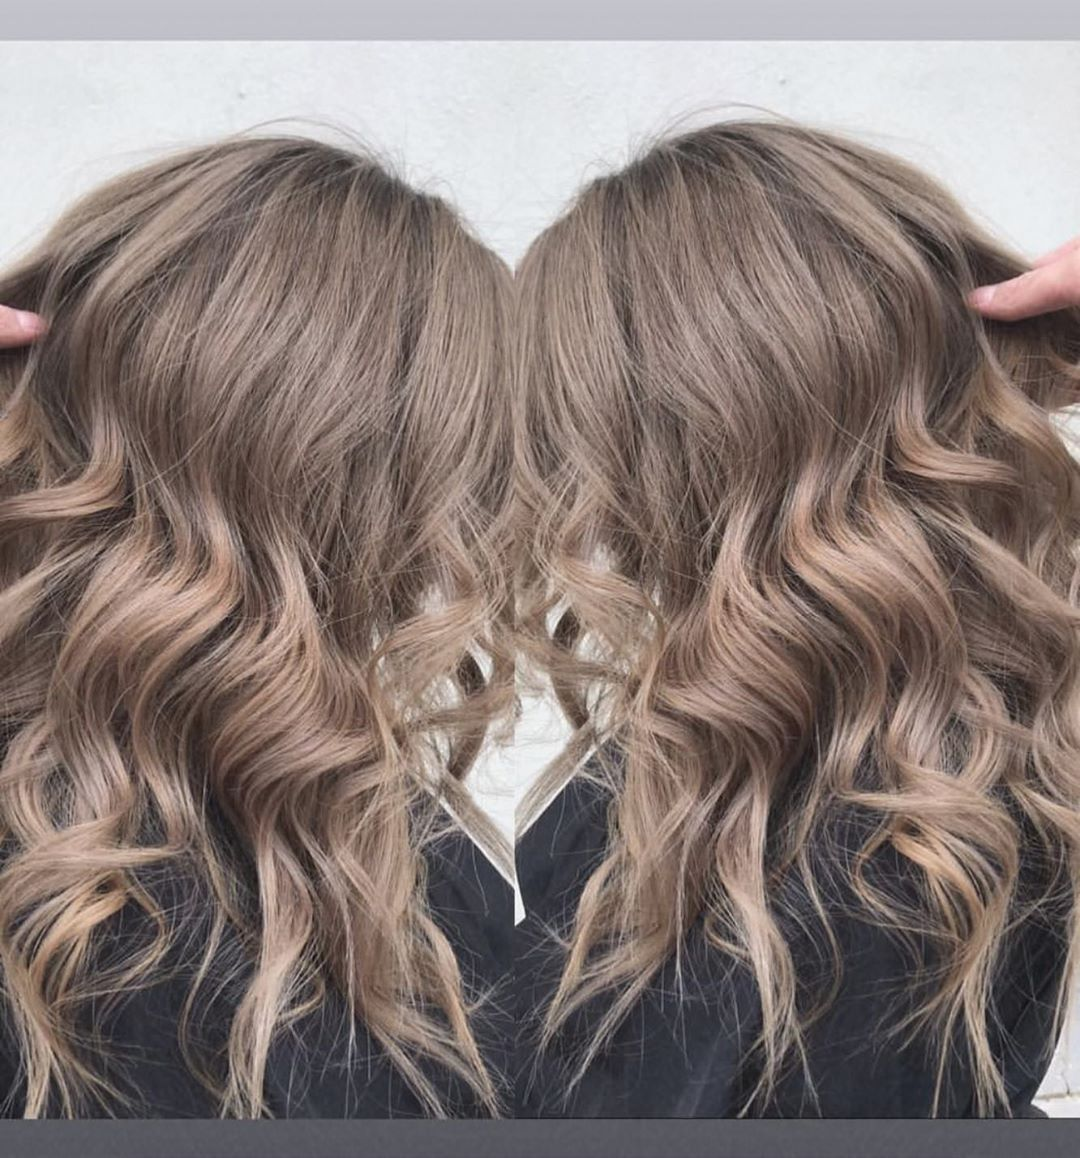 1.Dirty Blonde Curly 6